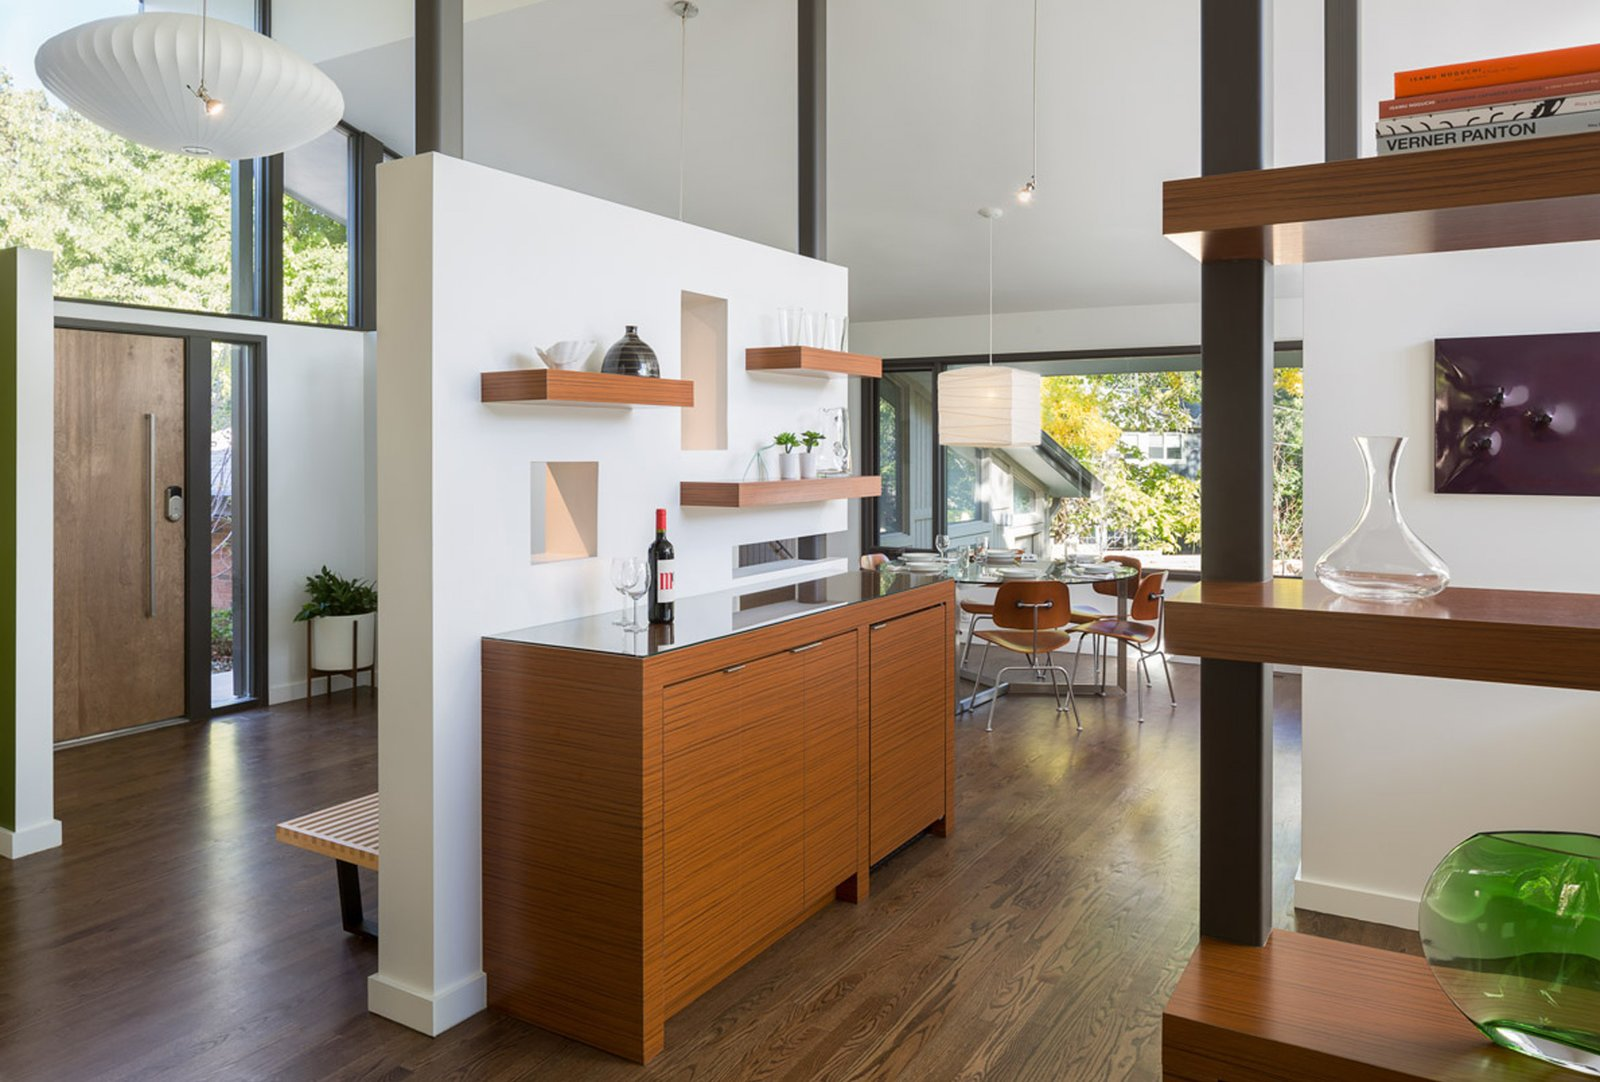 Removing a massive fireplace from the center of the home and replacing it with much smaller art-wall and built-ins creates a visual connection, making the spaces feel larger without adding on.  Mid Century Re-Modern by HMHAI